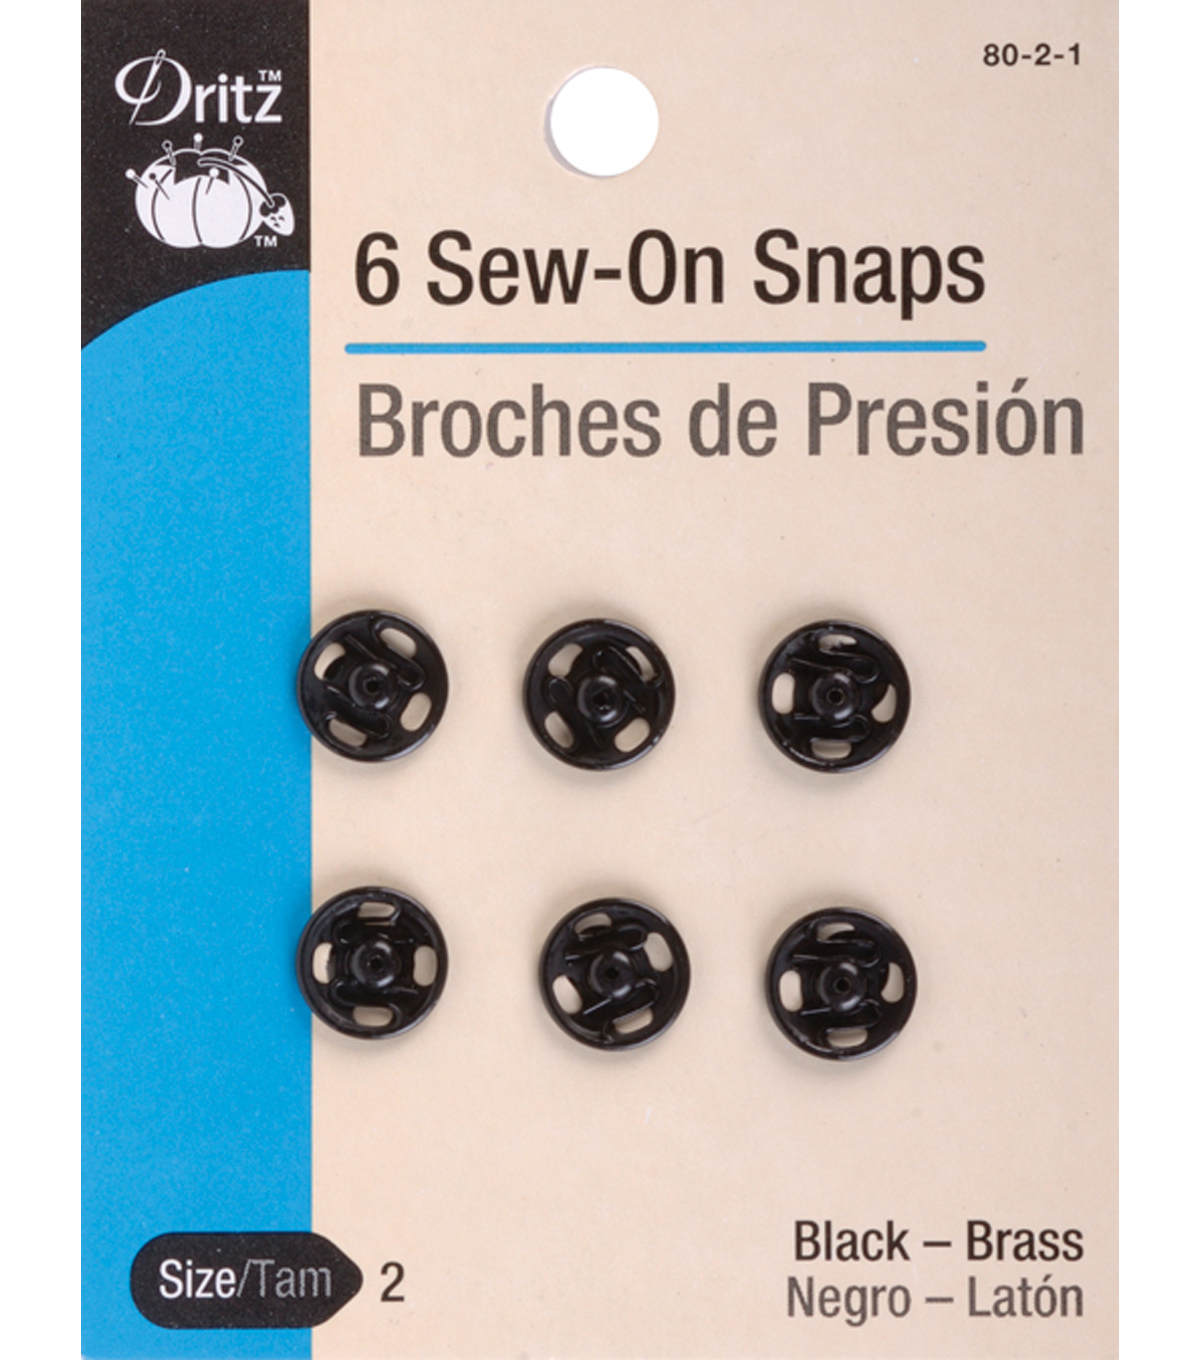 Dritz Sew-On Snaps Black Size 4/0